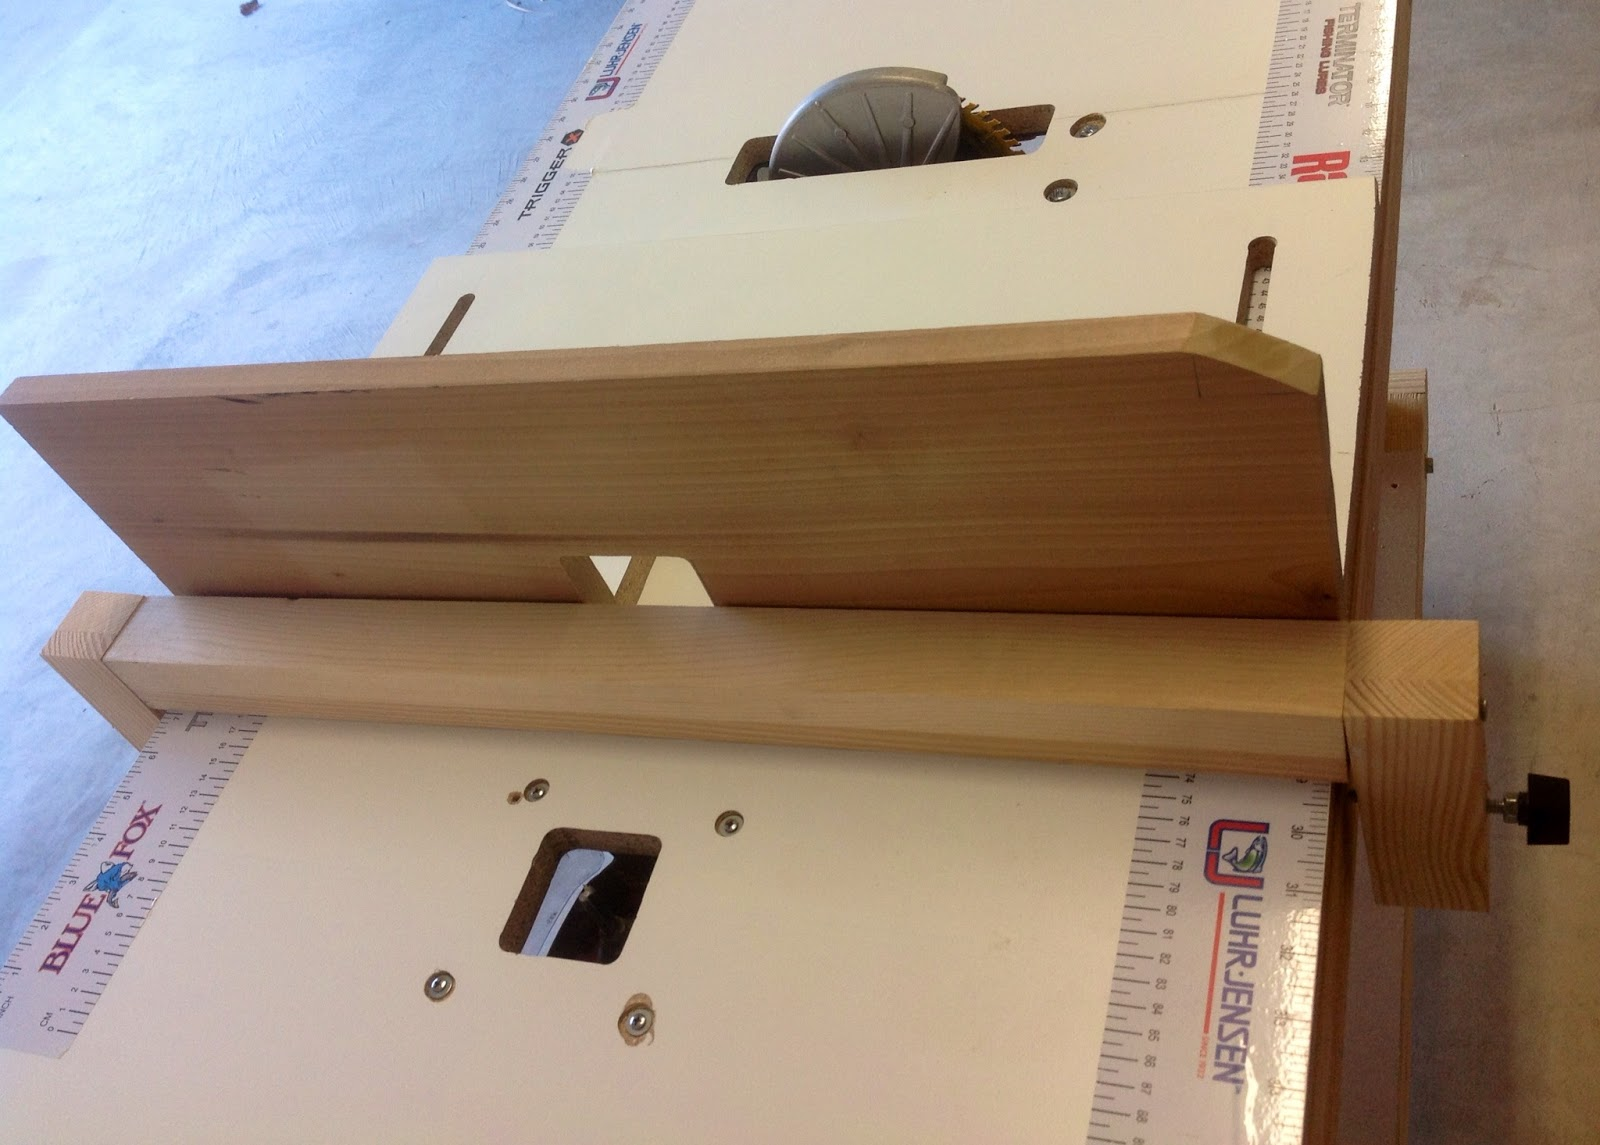 Thinking Wood: Project 2 - DIY Portable 3-in-1 Workbench / Table Saw on